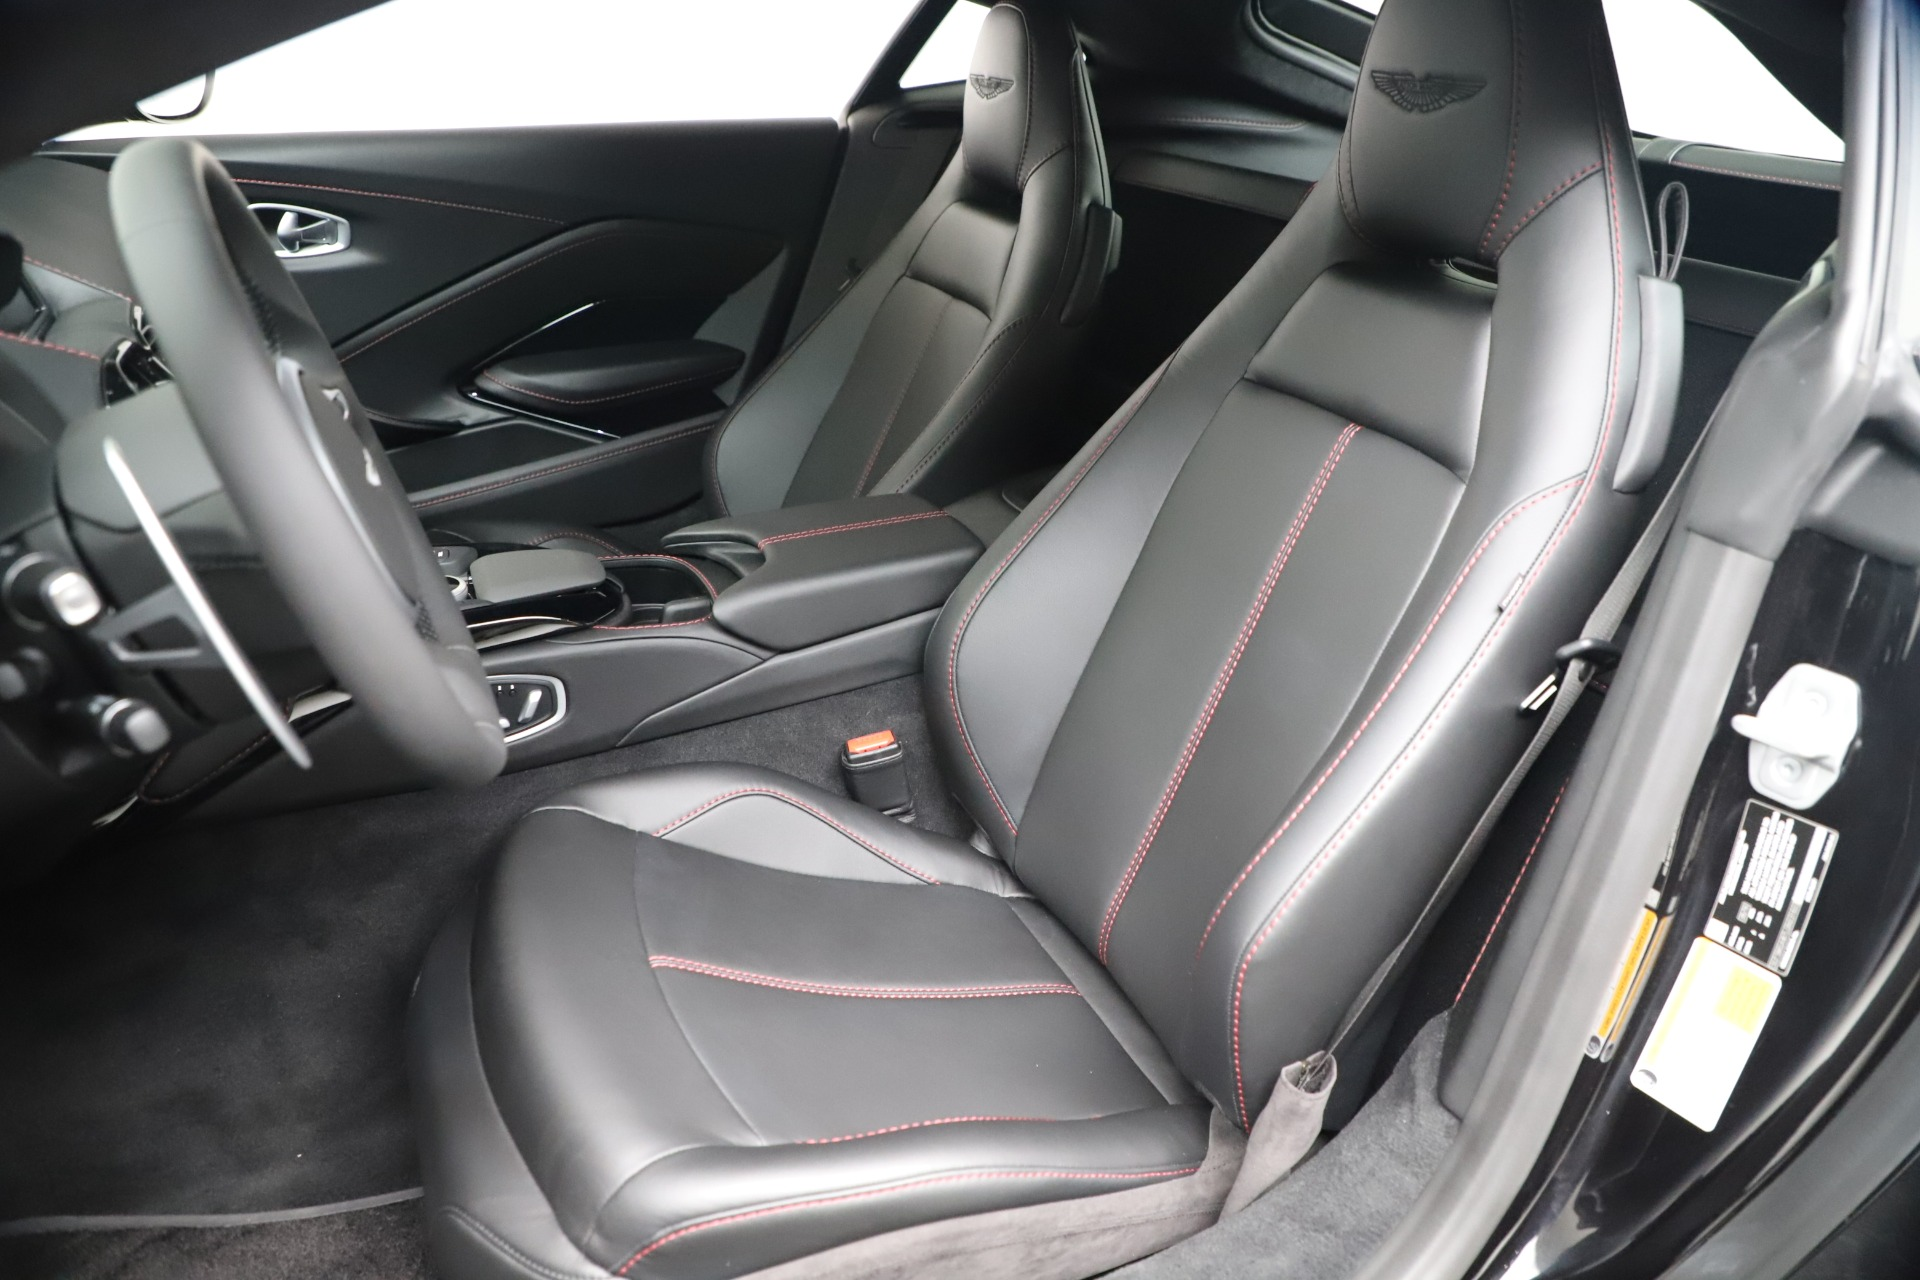 Used 2020 Aston Martin Vantage Coupe For Sale In Westport, CT 3340_p15